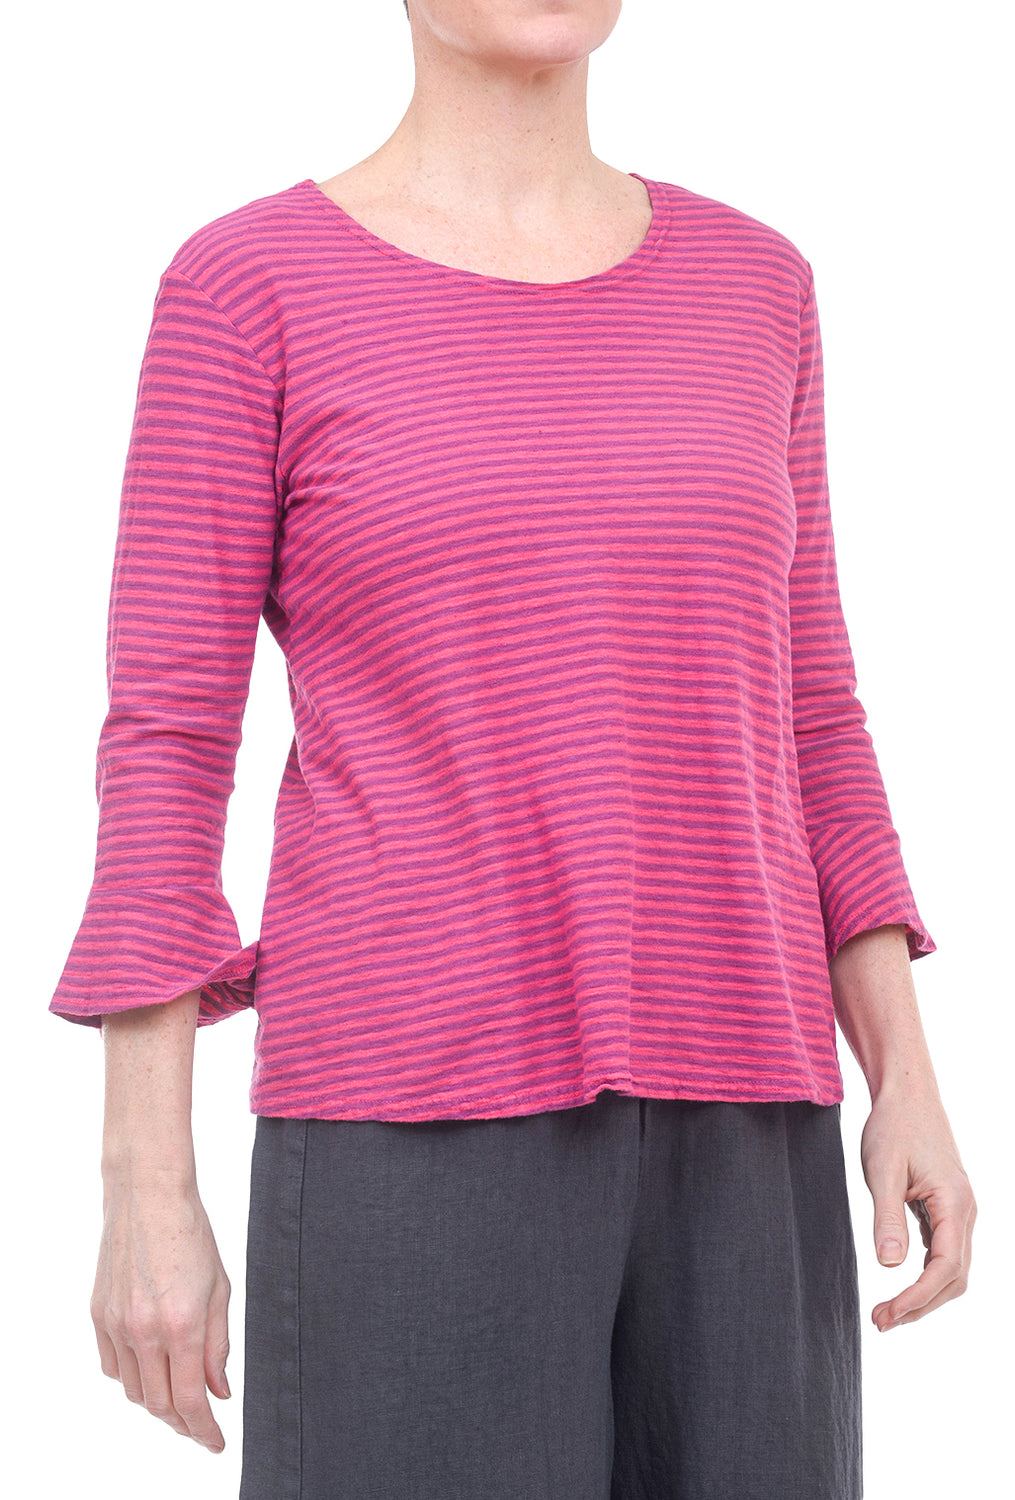 Cut Loose Linen Stripe Flare Tee, Cherry Fizz